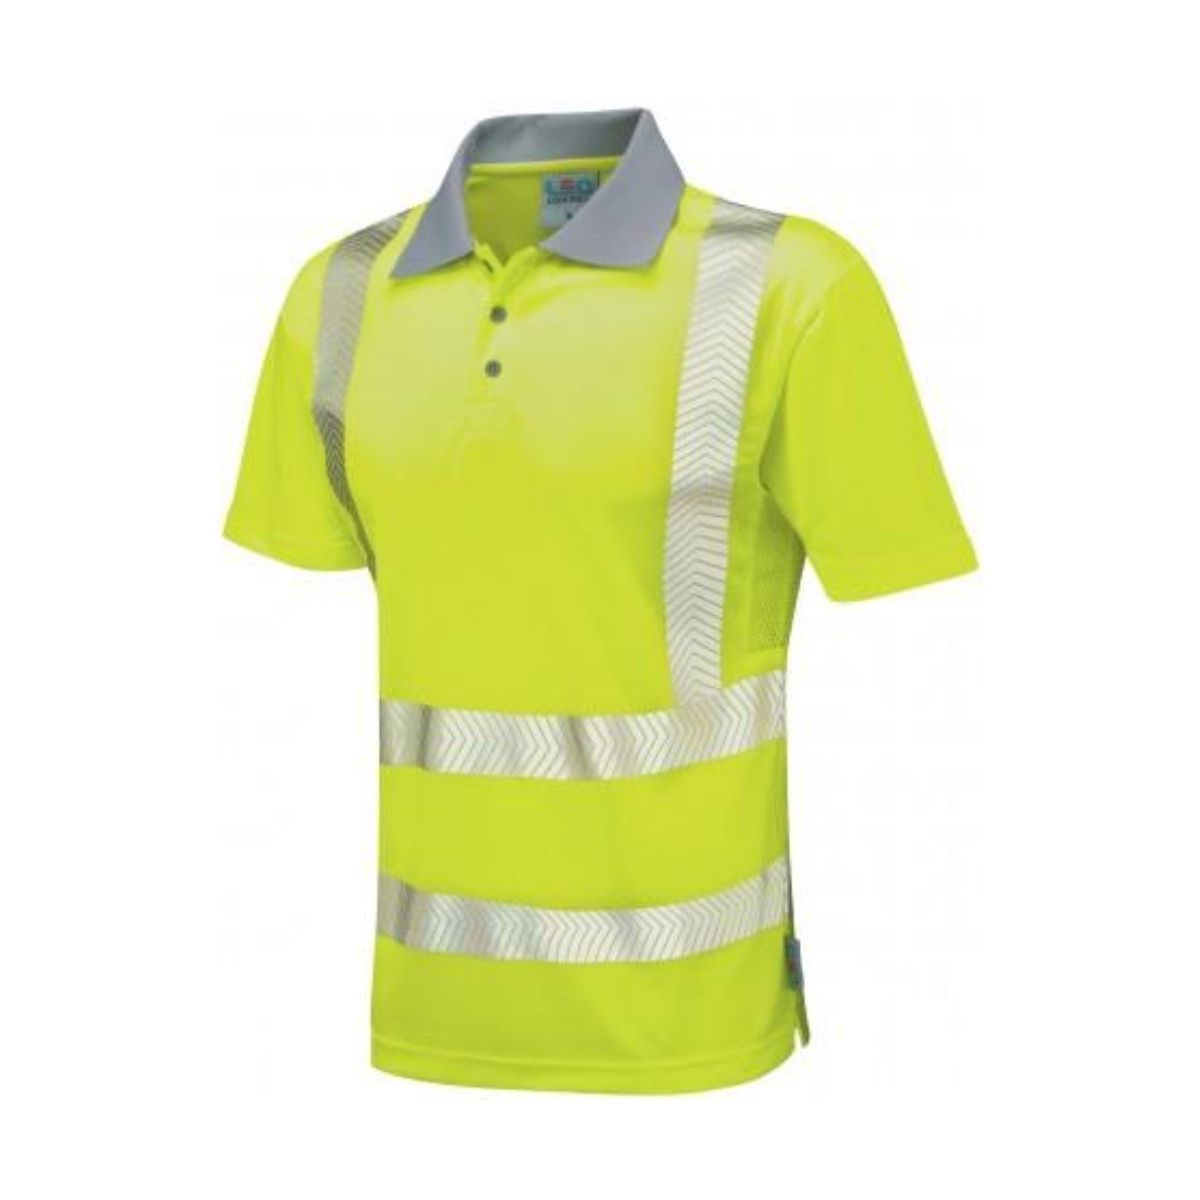 HV0046 Woolacombe Coolvis Plus Poloshirt - Yellow